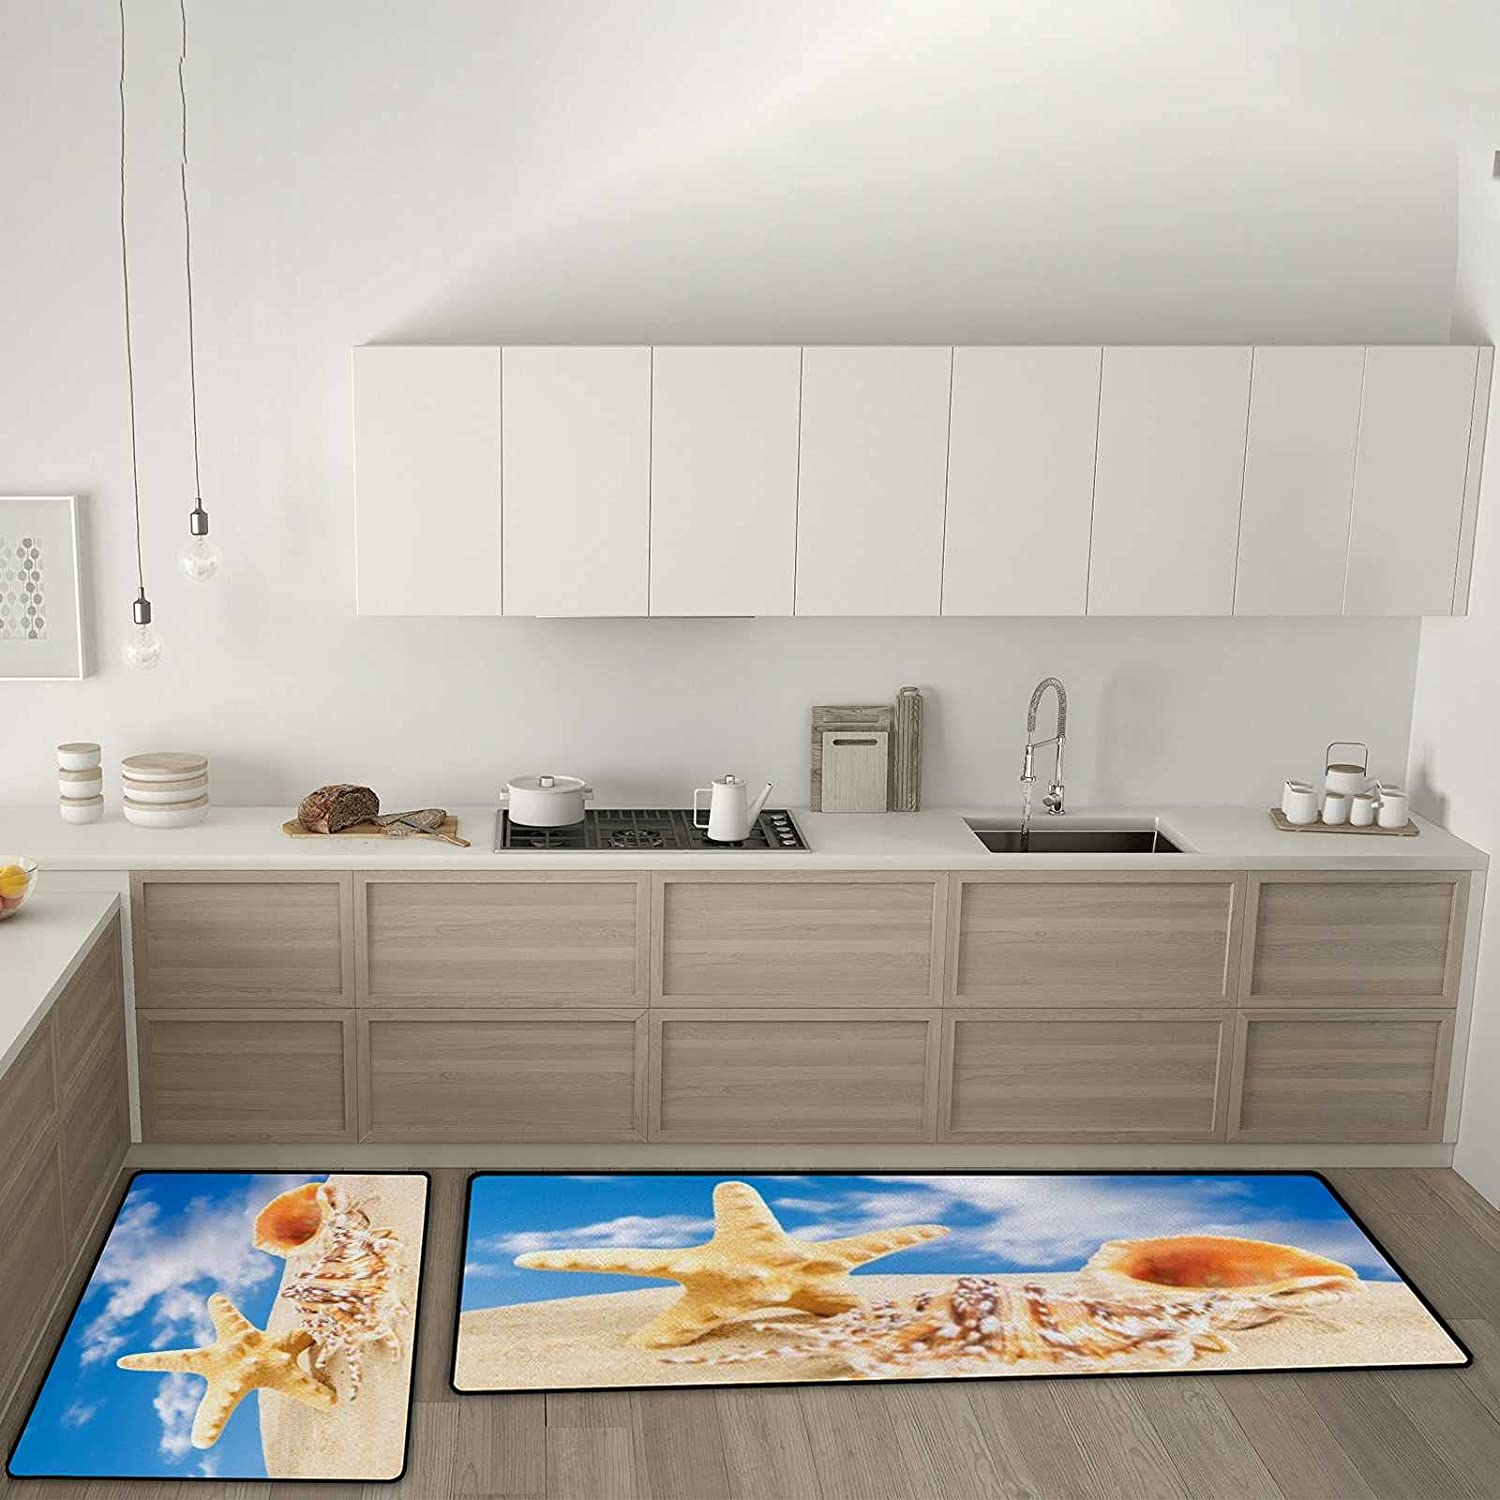 Kuizee Kitchen Mat Max 53% OFF Set of 2 Pieces Fatigue Time shopping Anti Rugs Summer